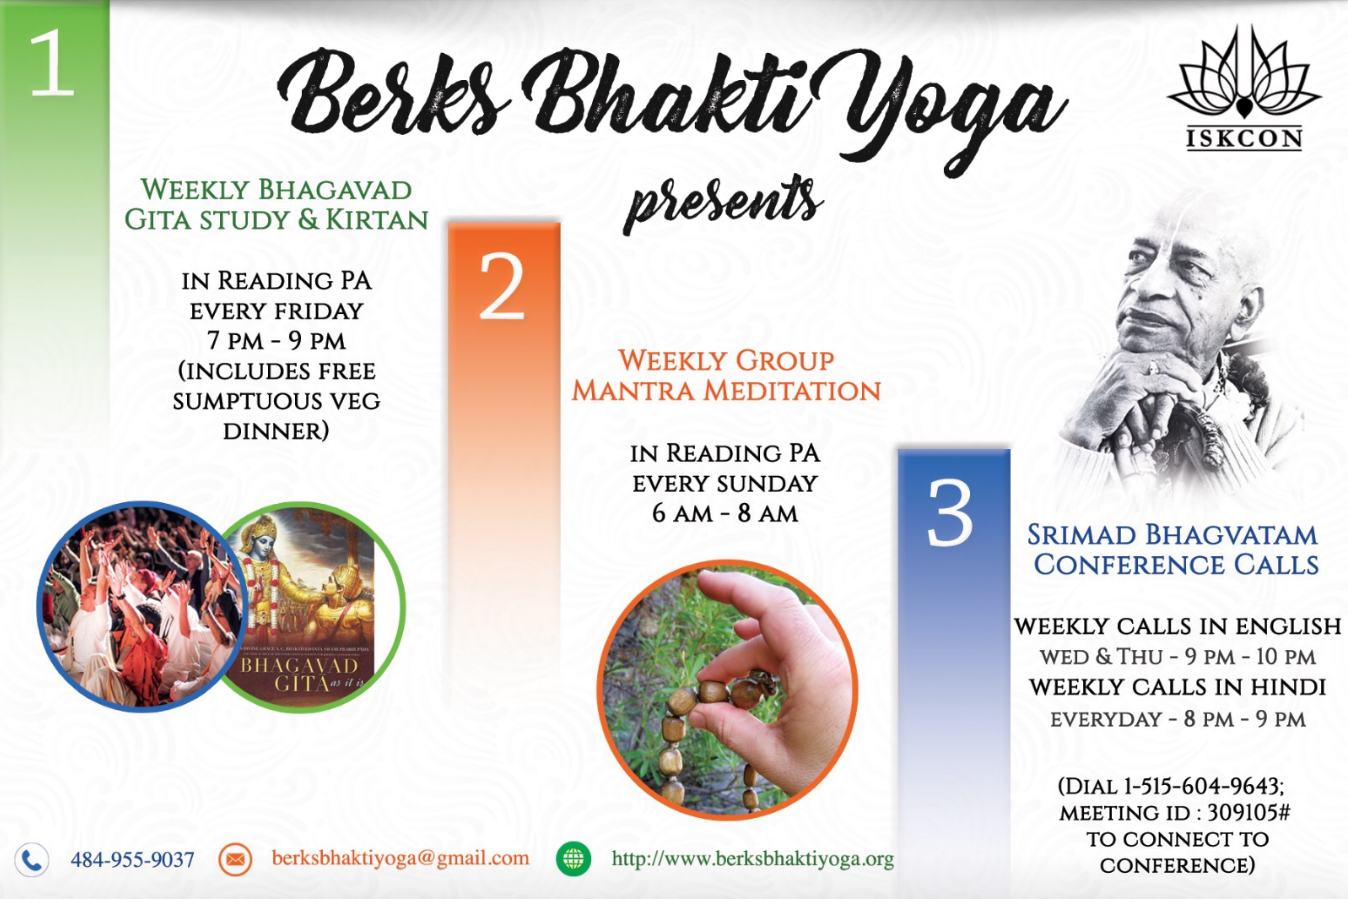 Come and Experience the Bliss and Nectar of Bhakti Yoga - Kirtan, Bhagvat Gita Study, Mantra Meditation in Reading - Friday's @7:30pm @ Online - Please Register for Details